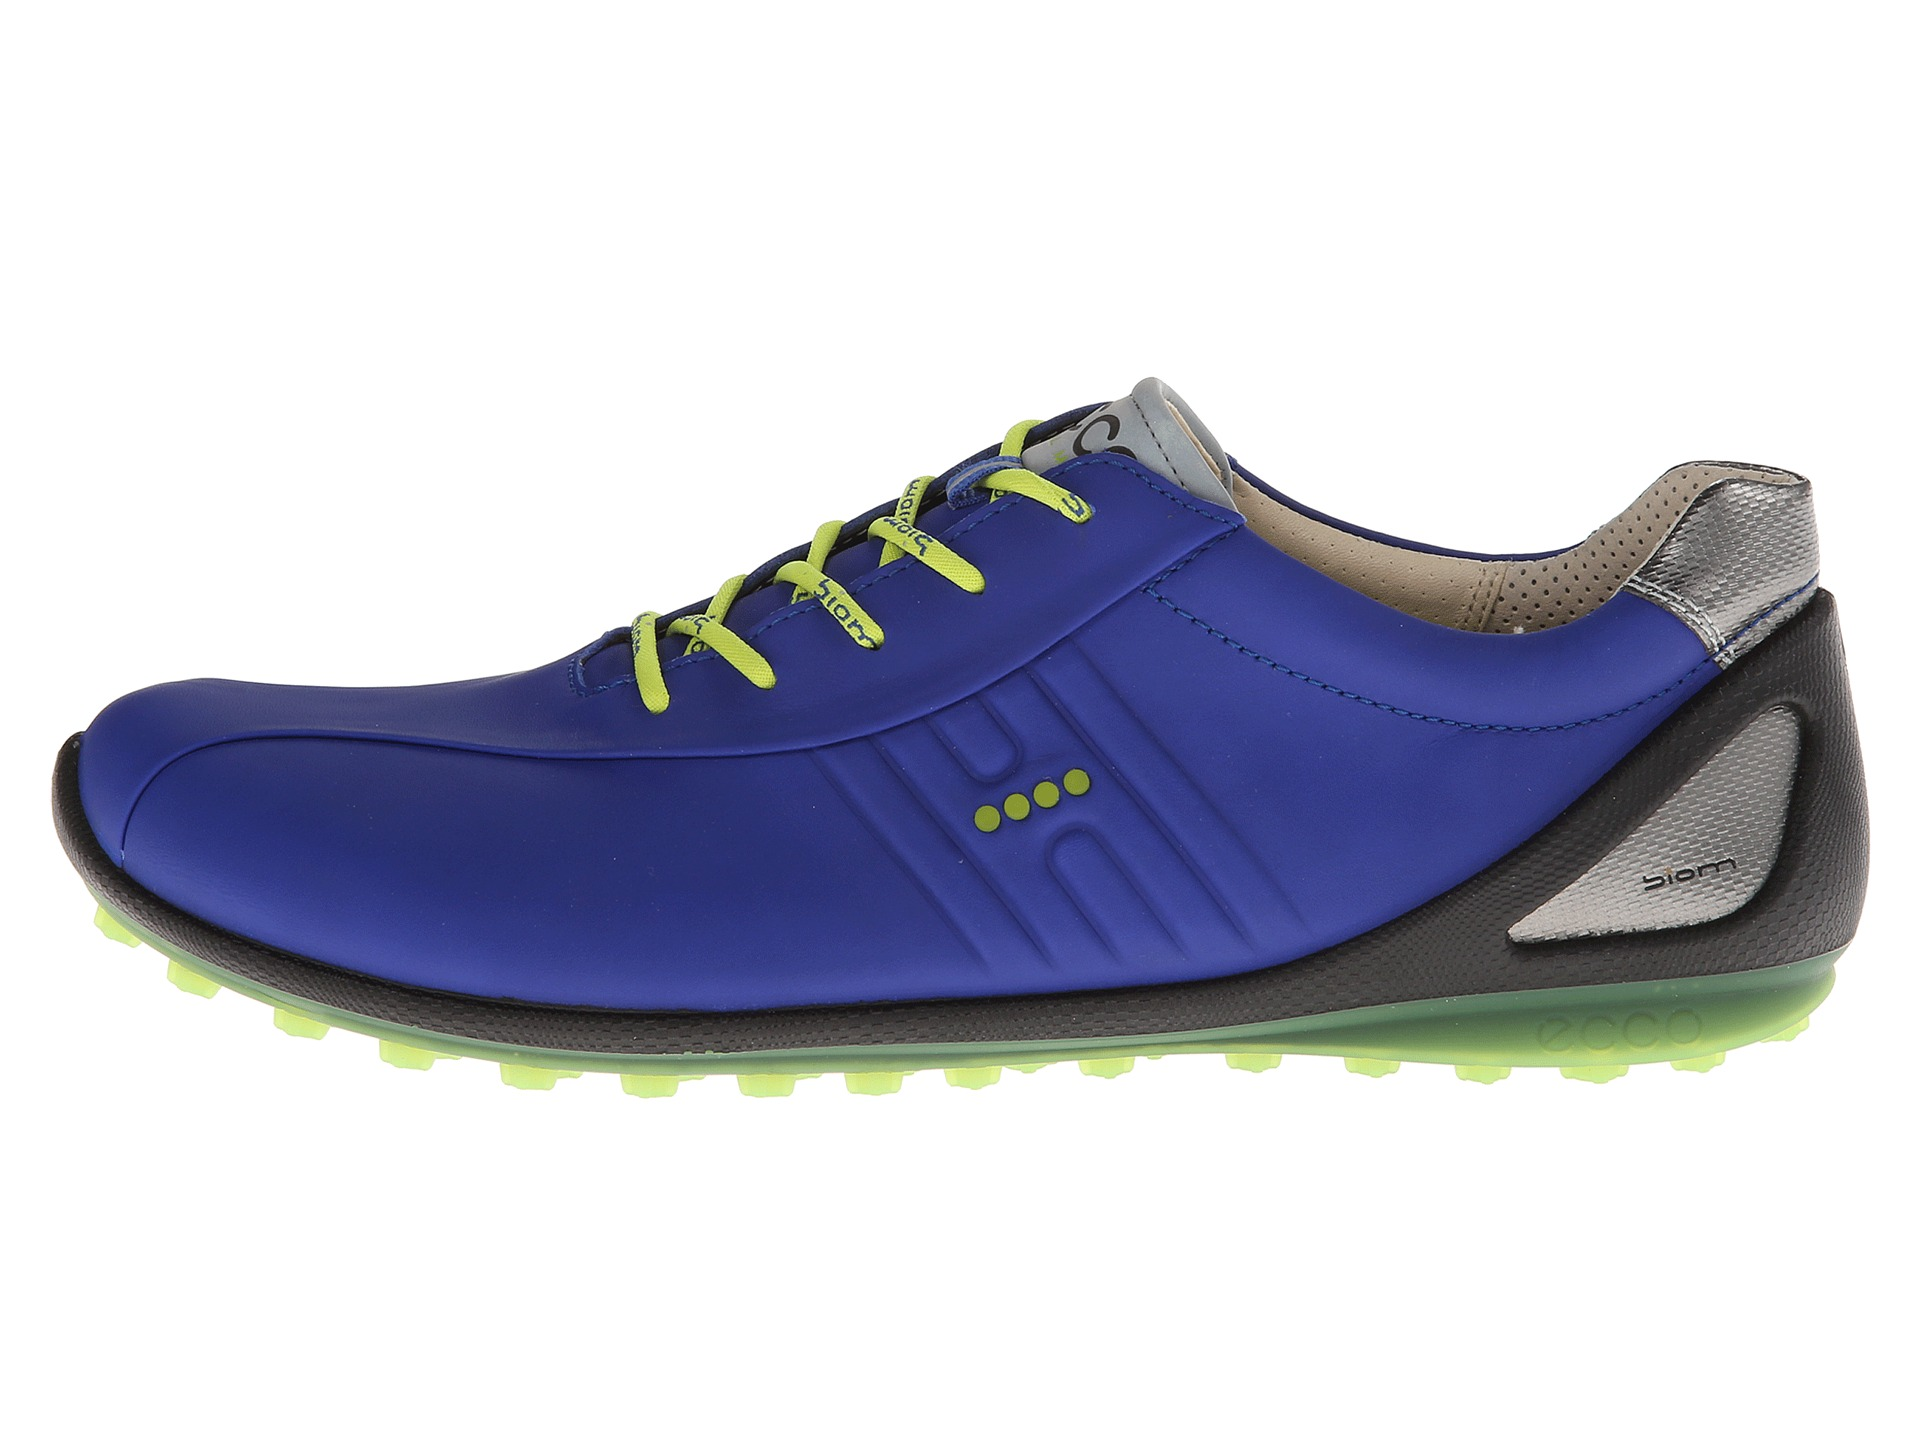 Ecco Lacing Shoes Sale Clearance